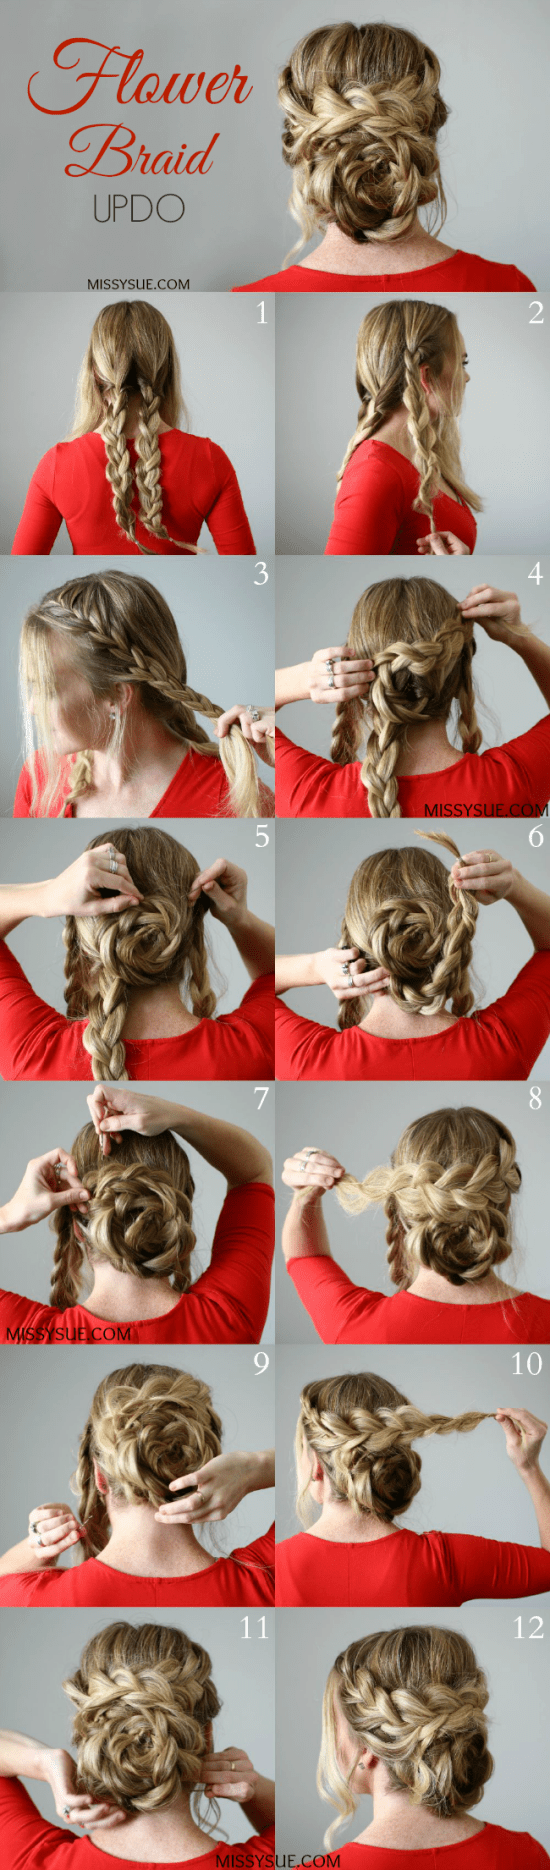 15 Easy Prom Hairstyles For Long Hair You Can Diy At Home Detailed Step By Step Tutorial Sun Kissed Violet Long Hair Updo Hair Styles Long Hair Tutorial